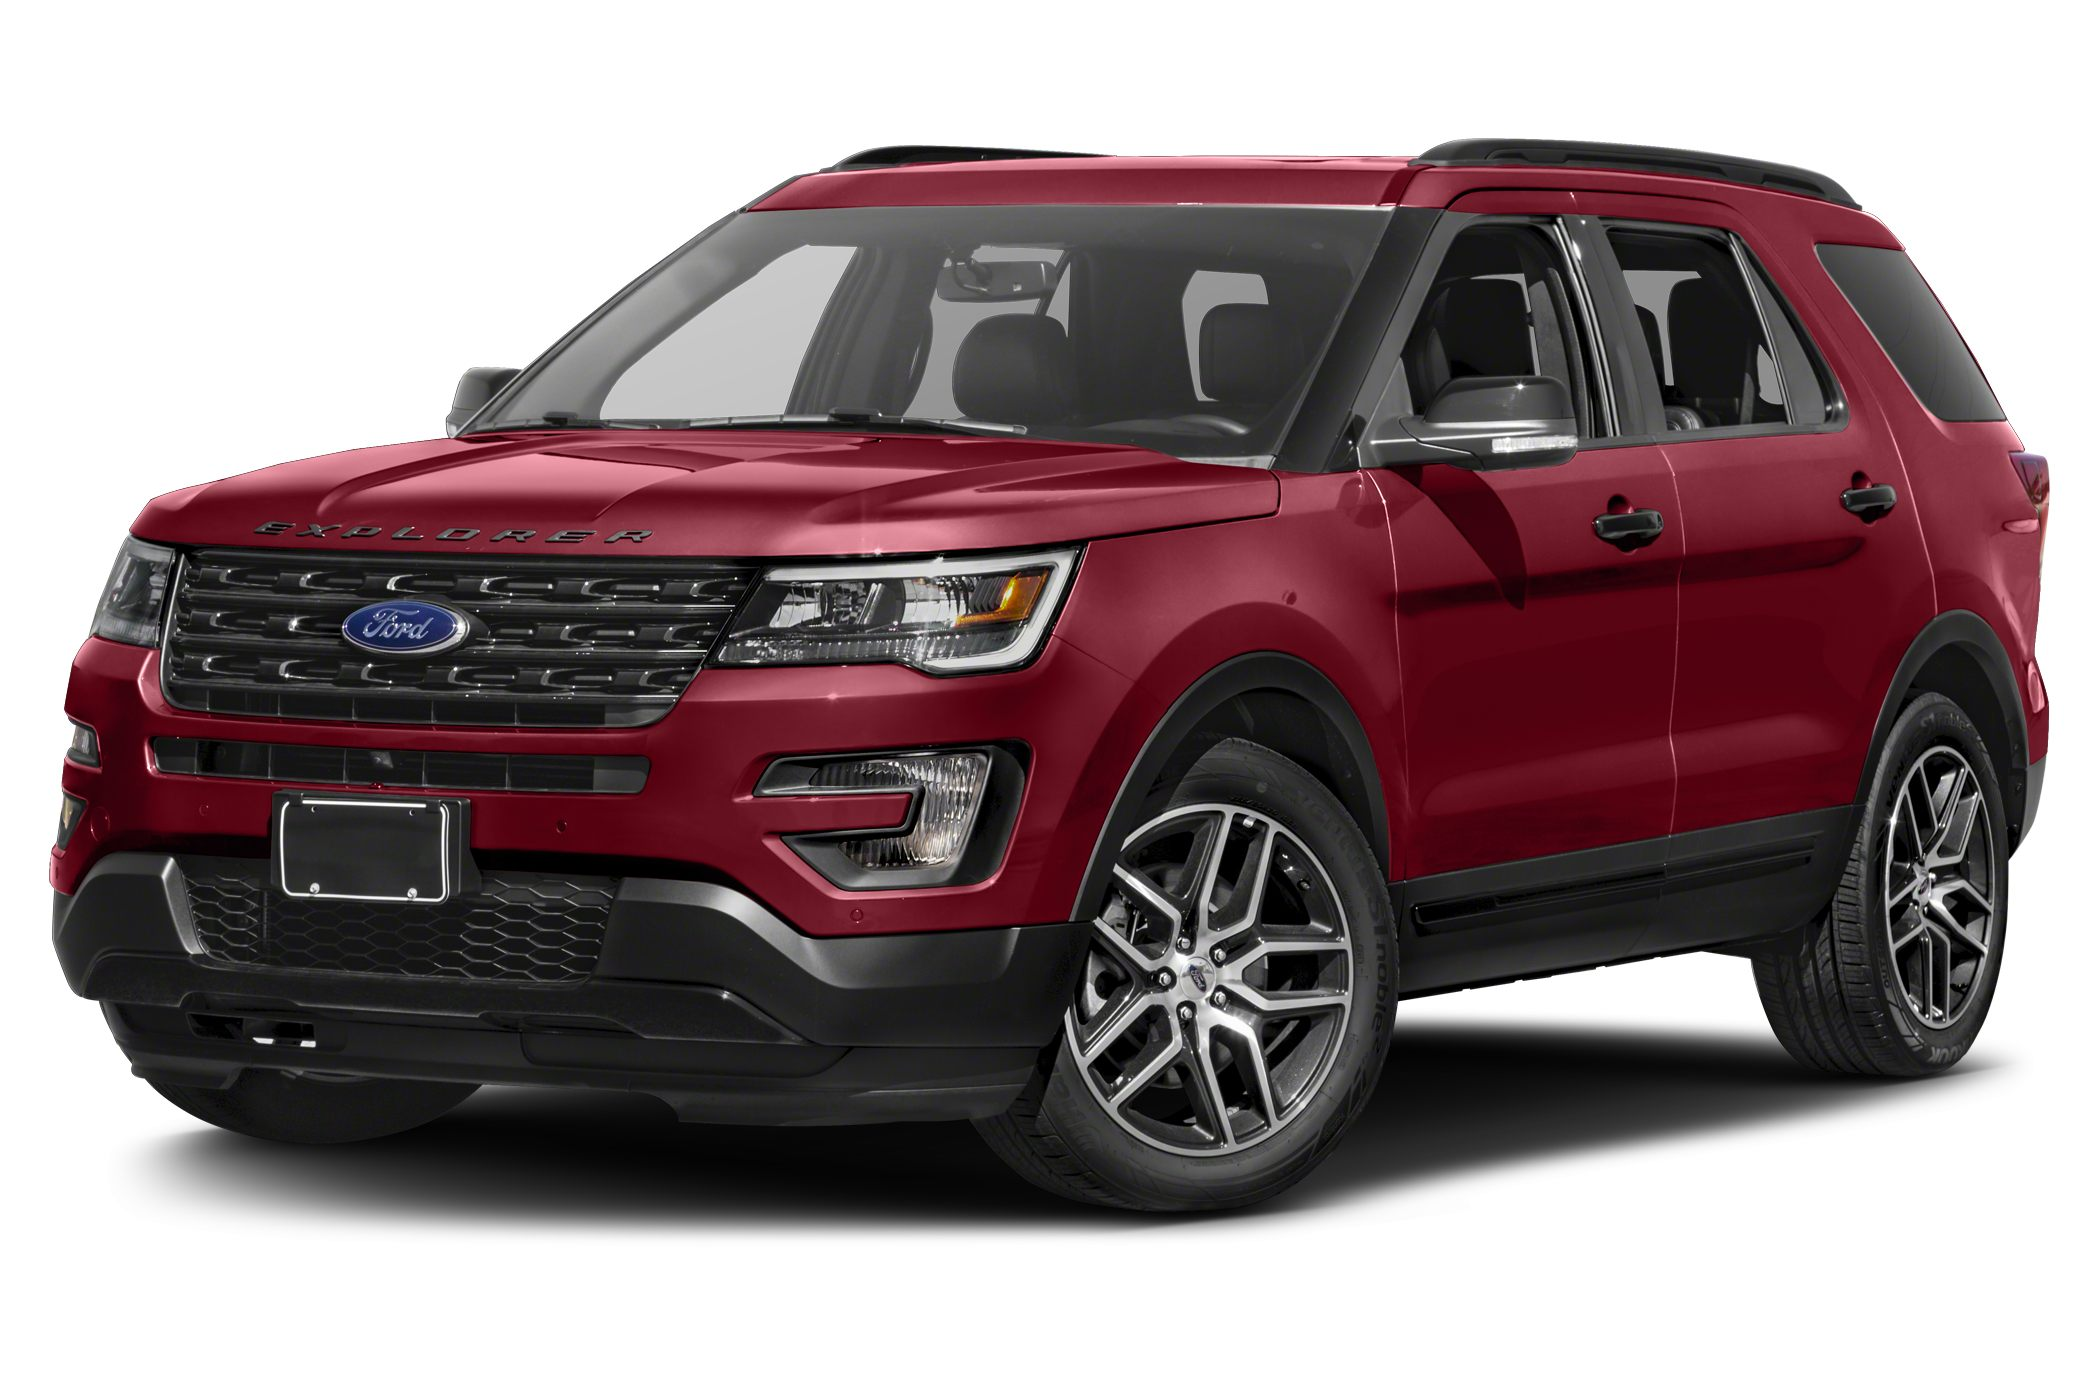 2016 Ford Explorer Sport 2 YEARS MAINTENANCE INCLUDED WITH EVERY VEHICLE PURCHASED Want more room